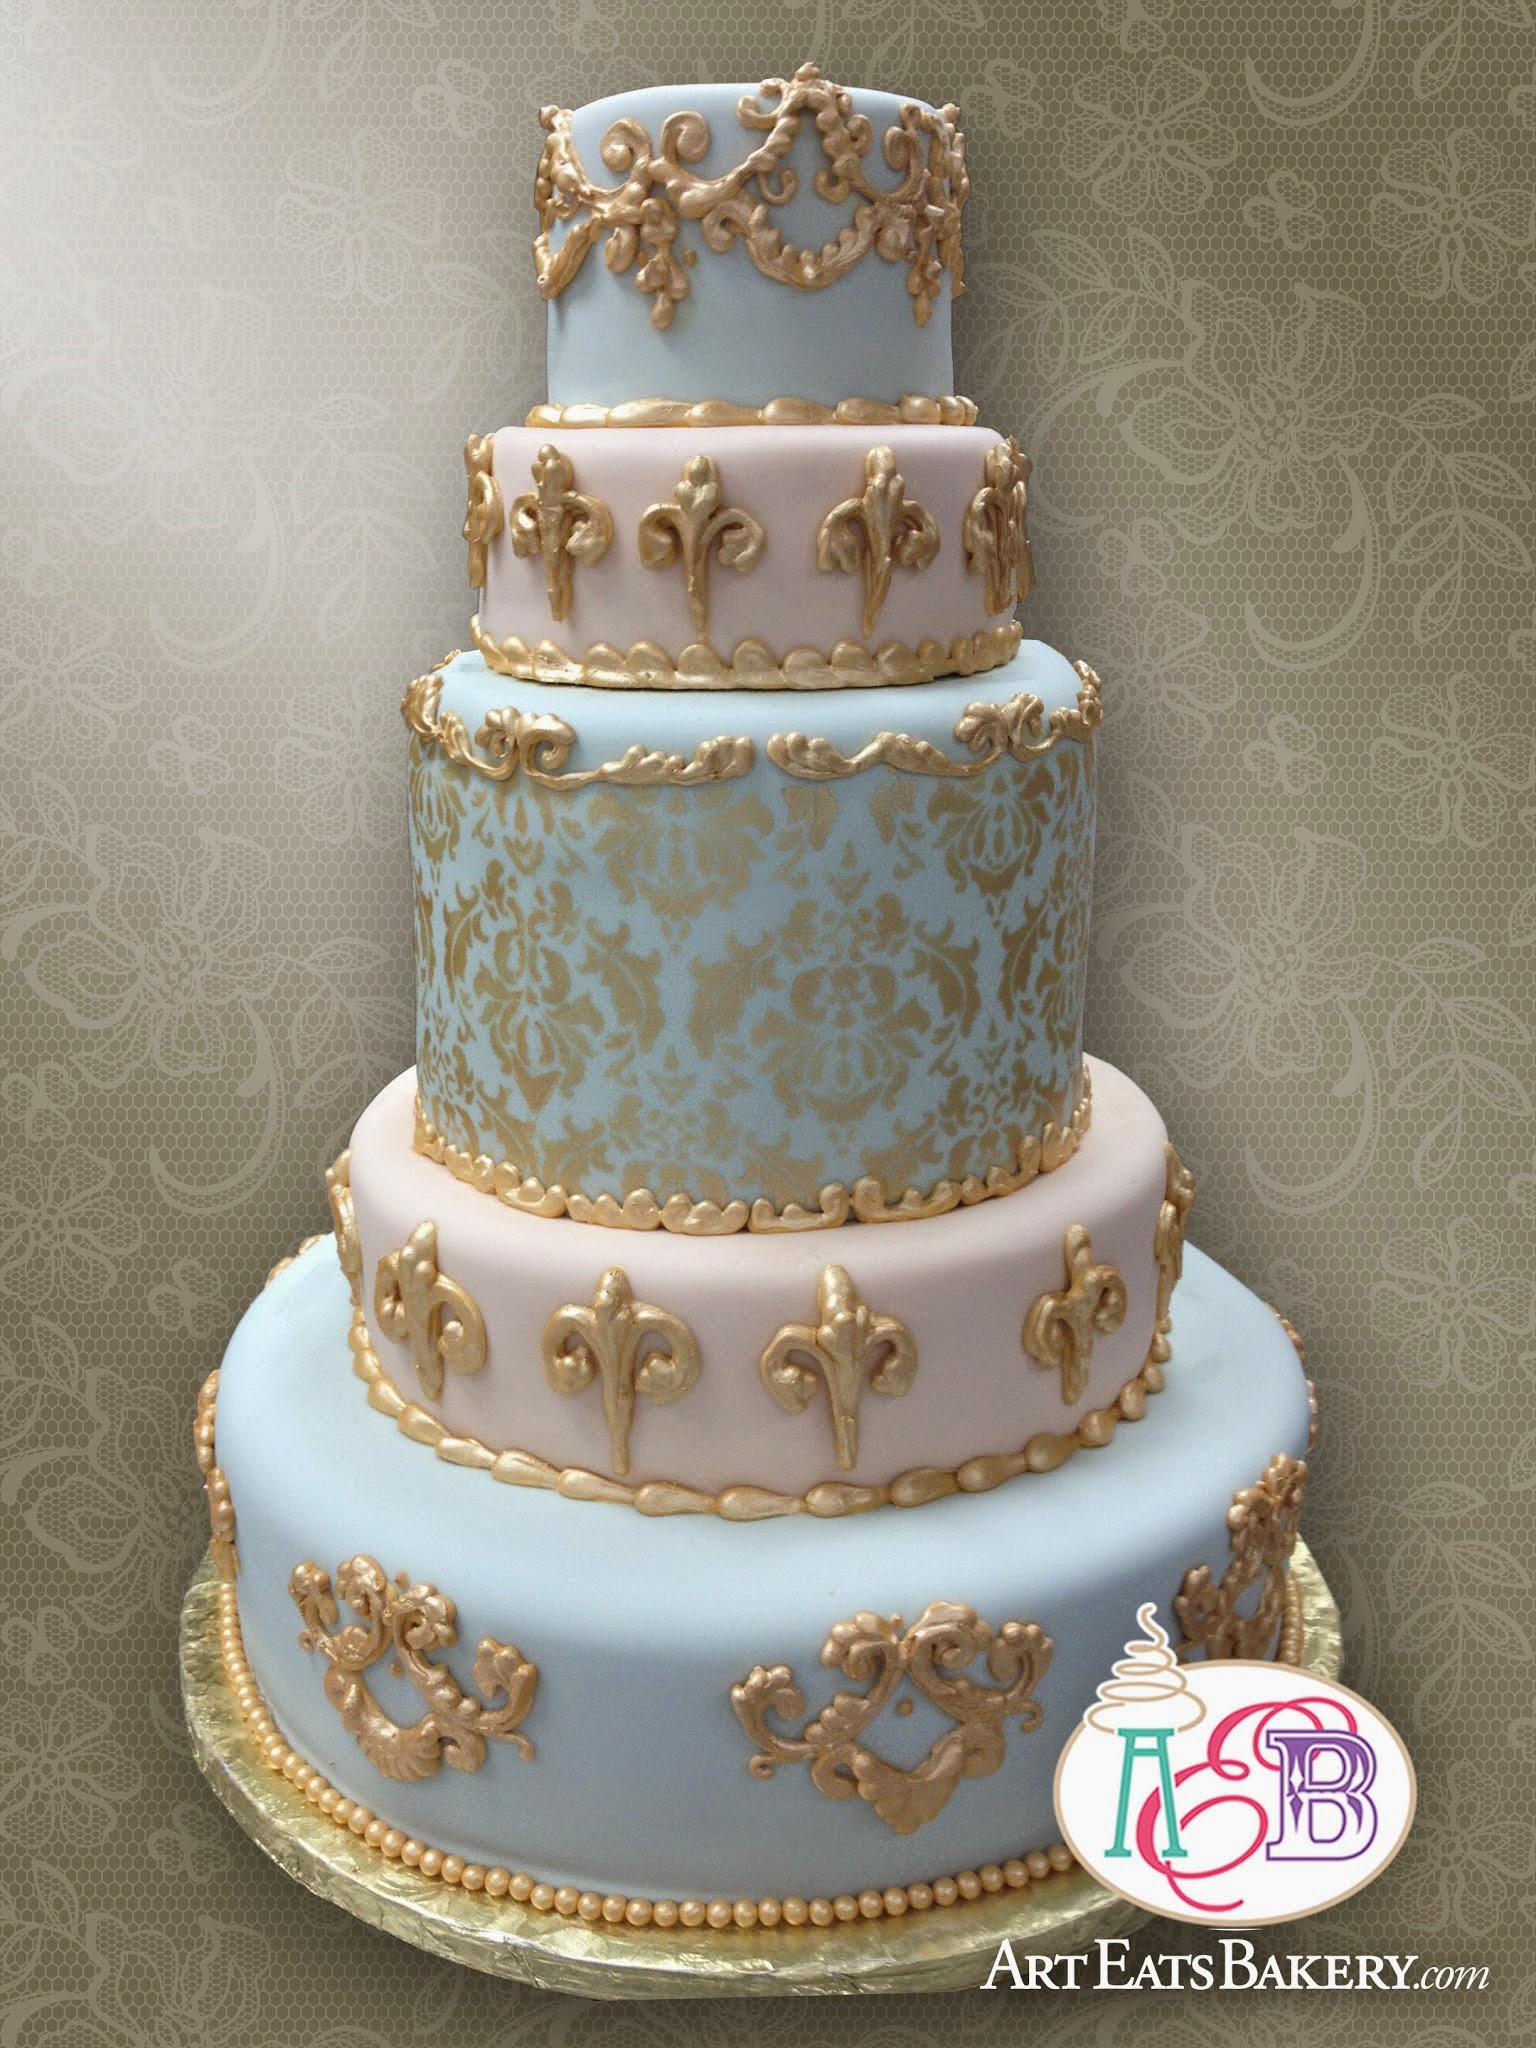 5 Tier Elegant Baroque blue and pink ornate elegant fondant Wedding Cake with Gold Damask Pattern and flourishes design.jpg